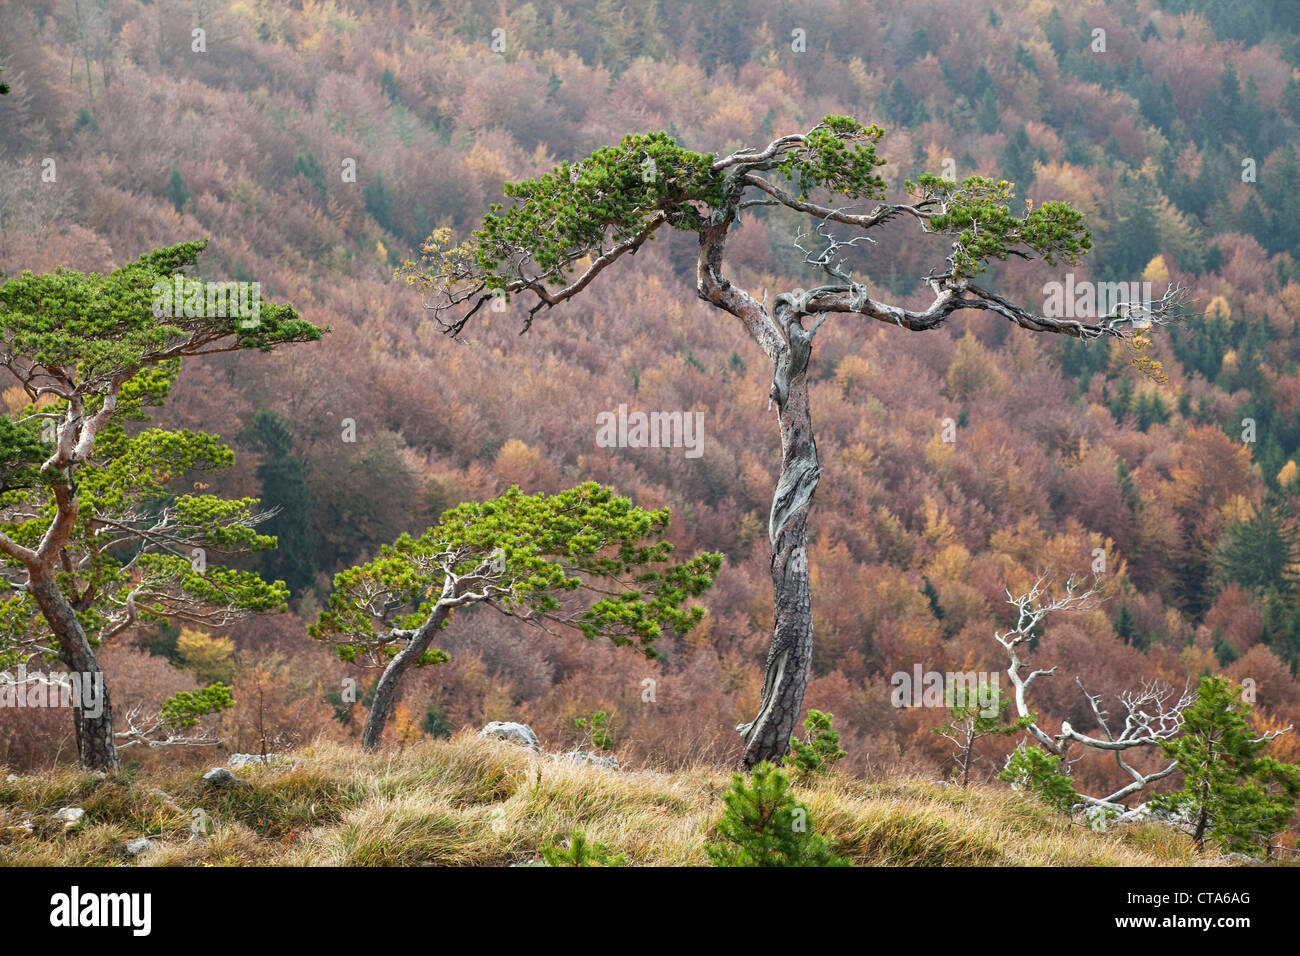 Pine trees (Pinus sylvestris) in Autumn, Upper Bavaria, Germany - Stock Image